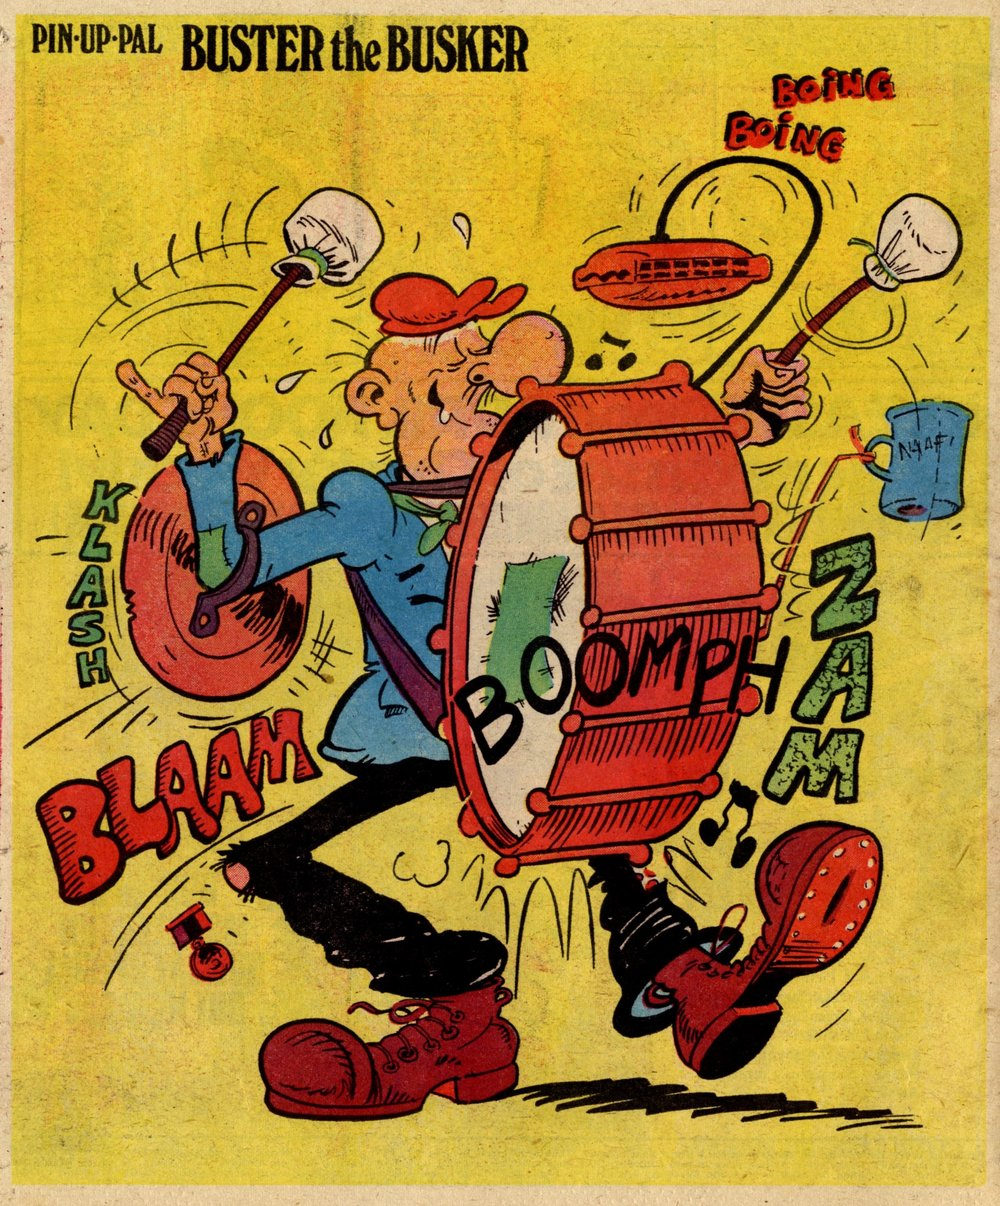 Pin-up Pal: Buster the Busker (artist Frank McDiarmid), 25 March 1978